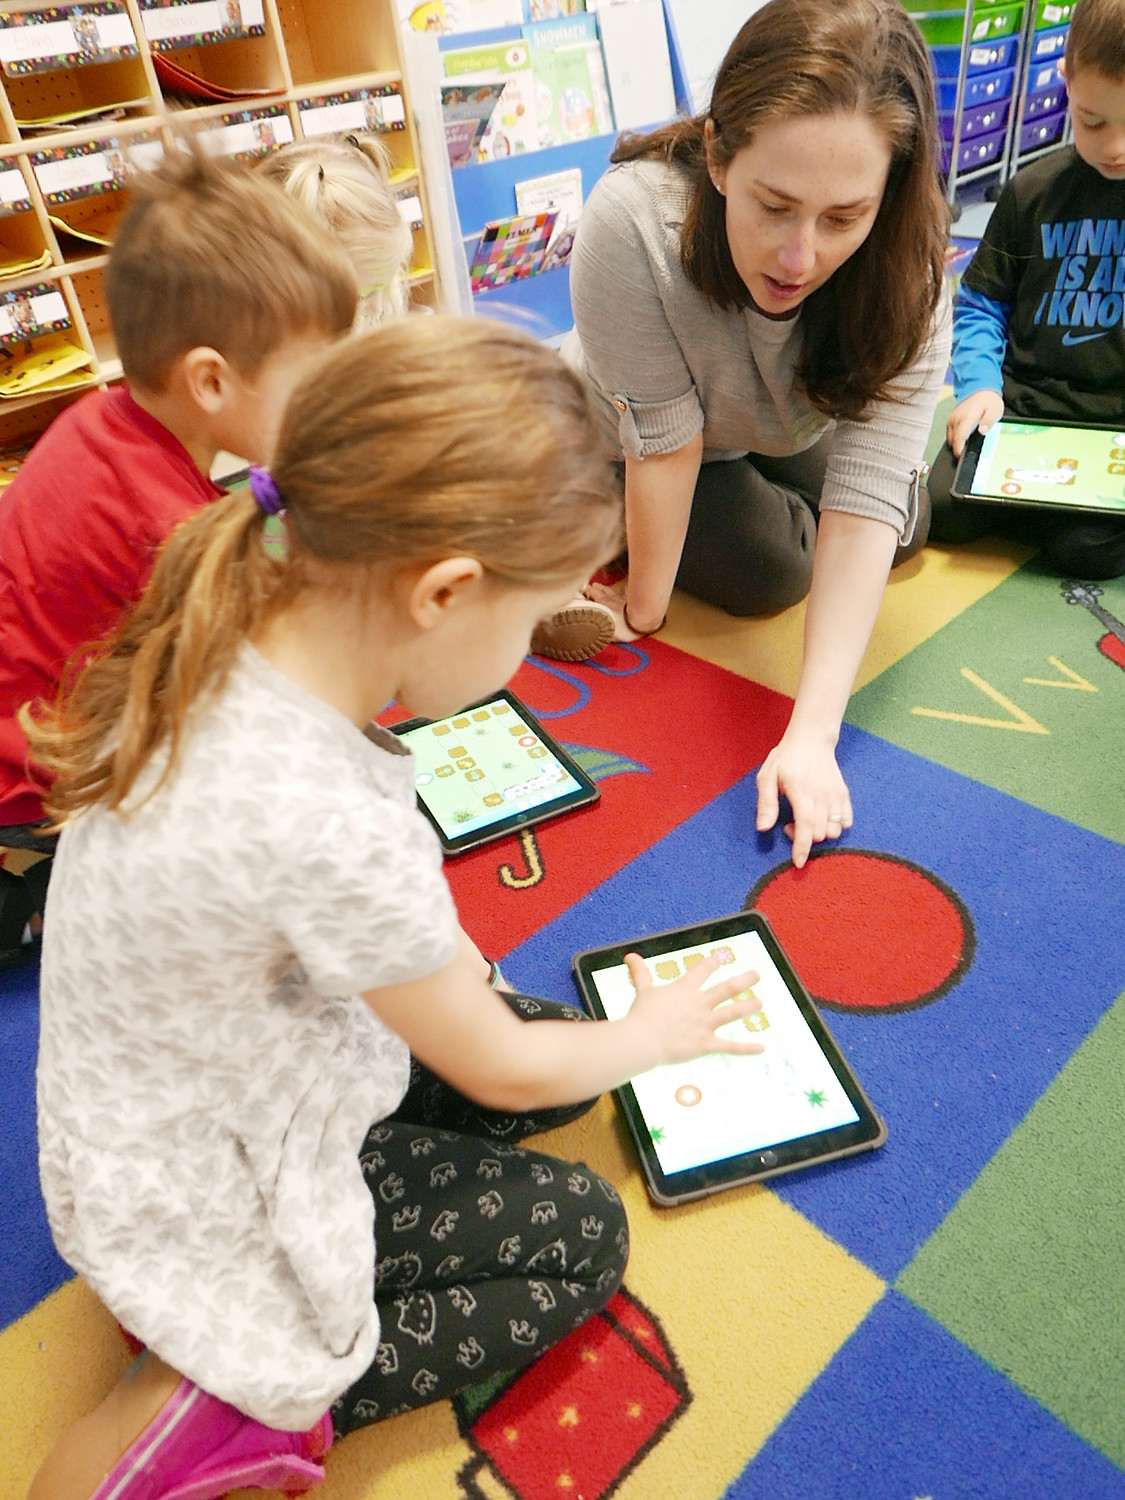 Pre-K student Victoria Fertucci learns the basics of using an iPad from teacher Christy Marks.